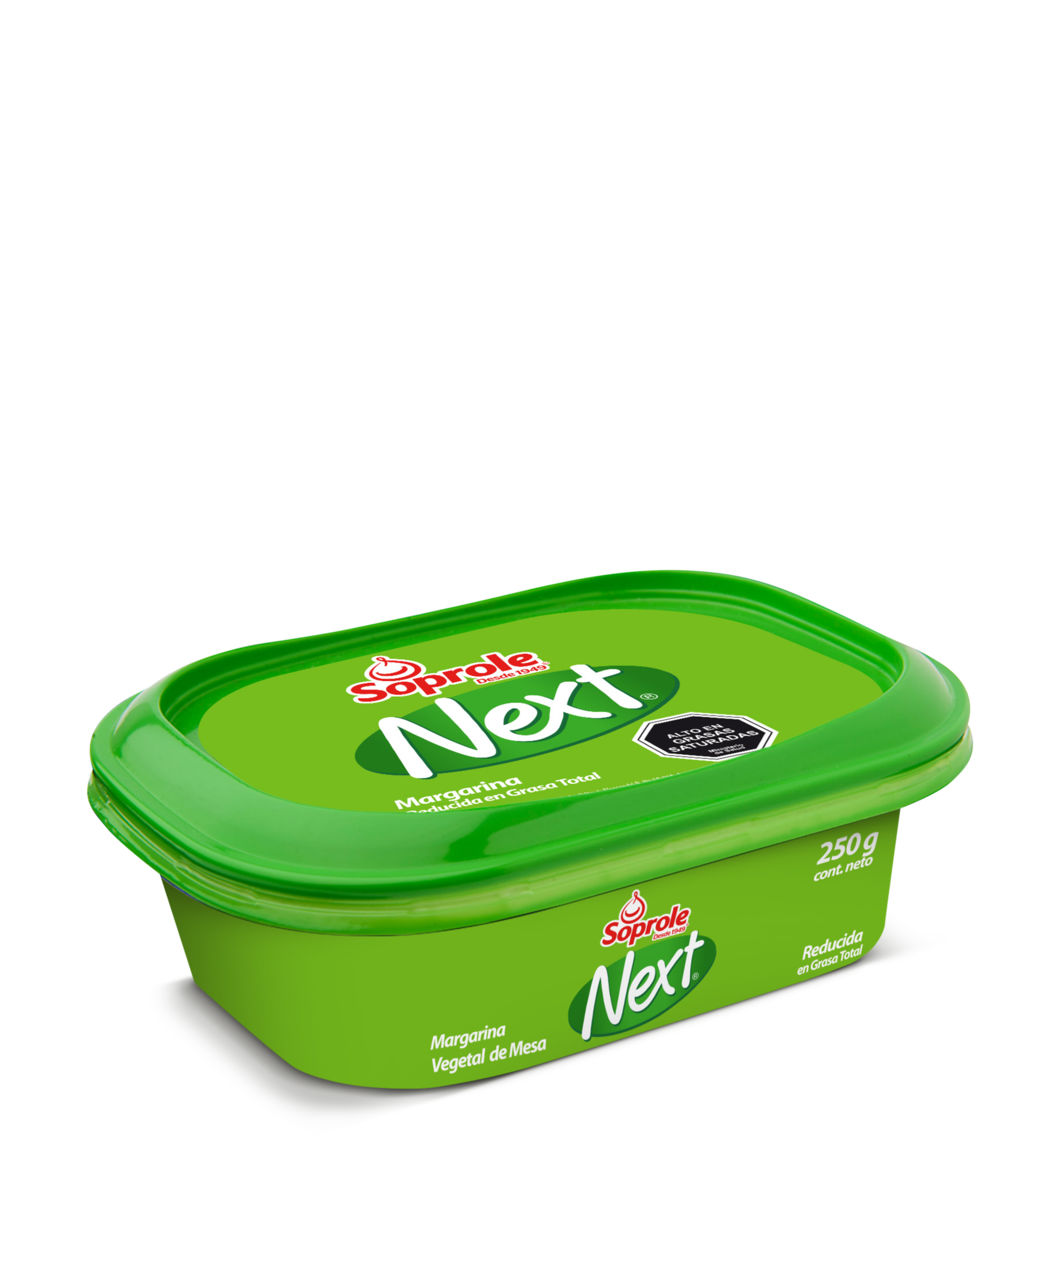 Soprole Next Margarina Pote 250g